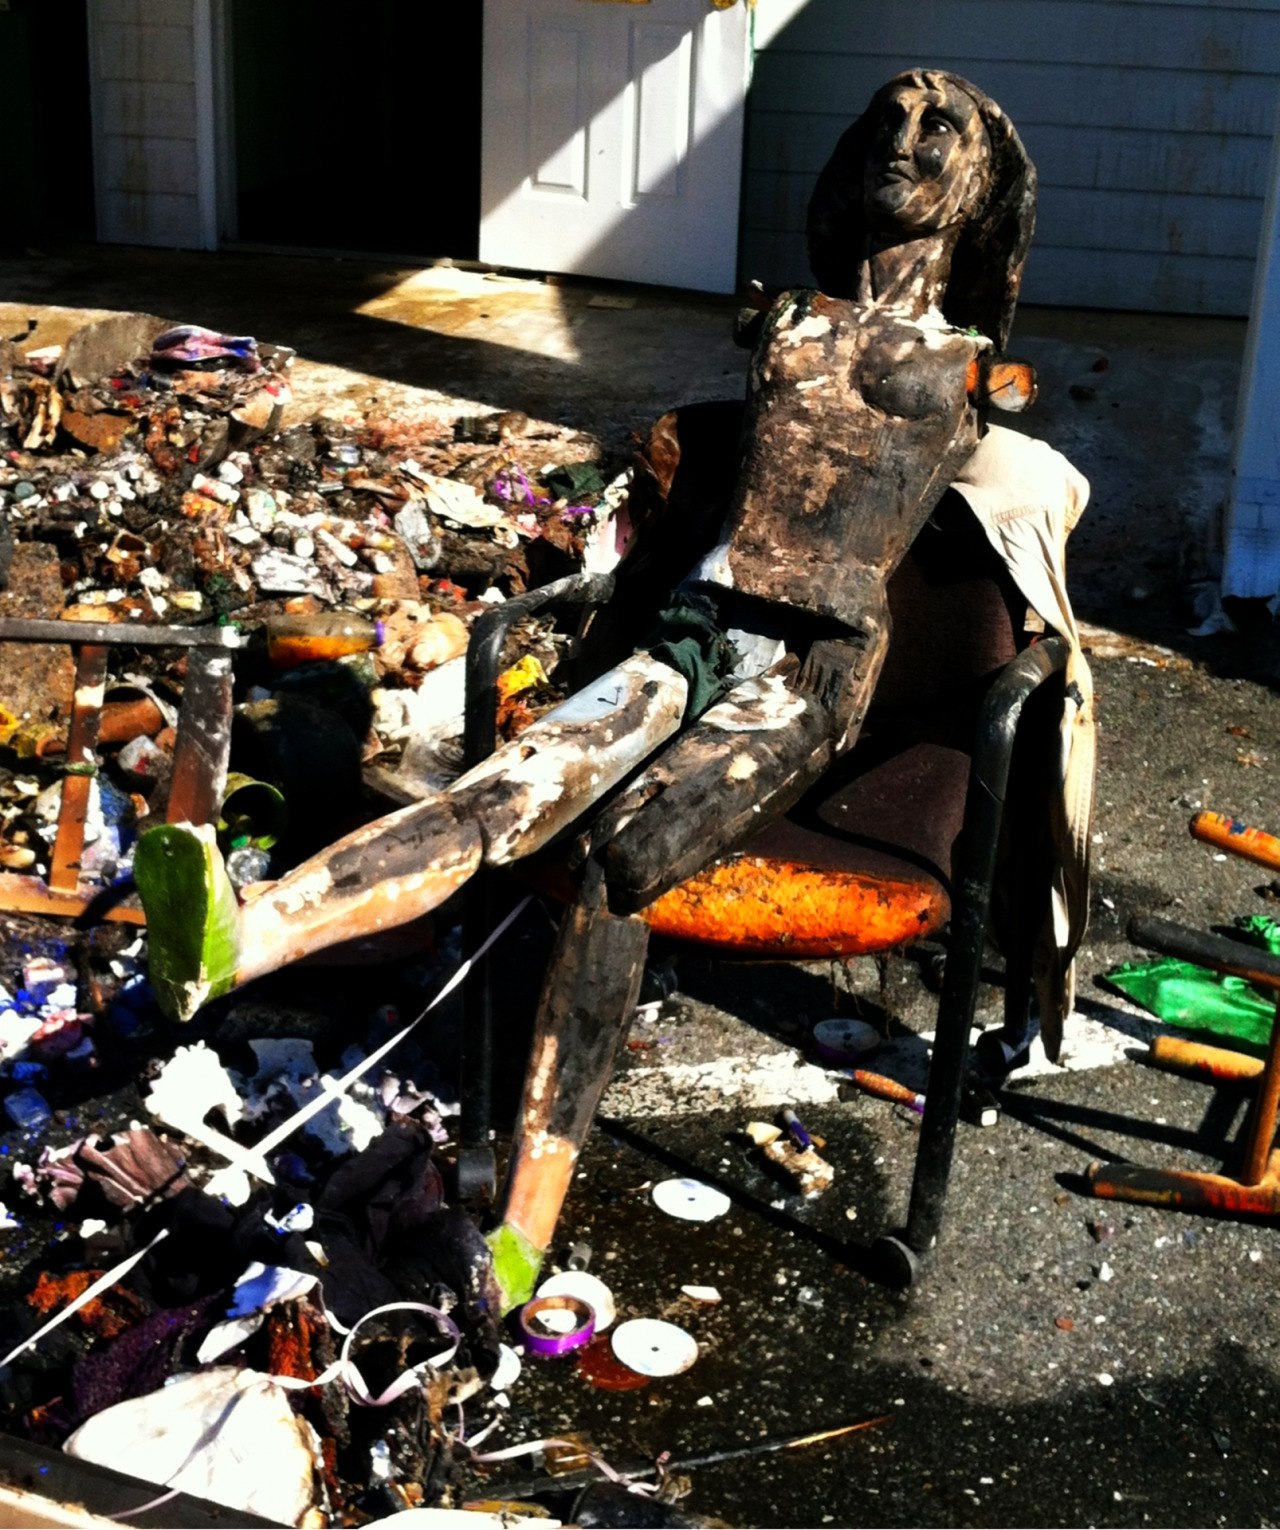 A fire next door produced charred mannequins.